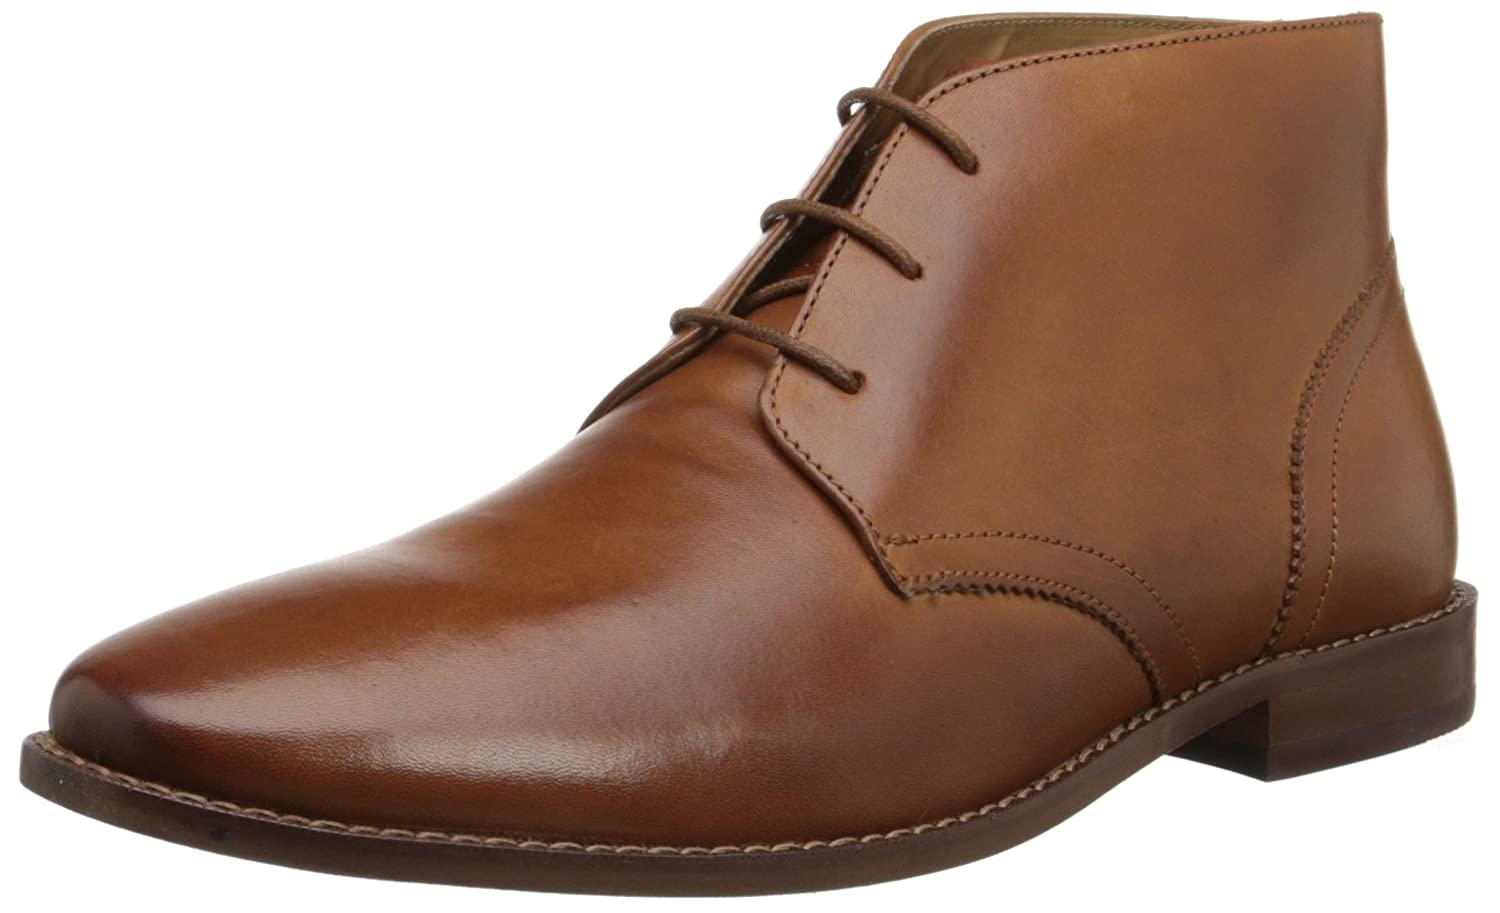 Florsheim Men's Montinaro Plain Toe Dress Casual Chukka Boot Montinaro Pln Toe Chukka